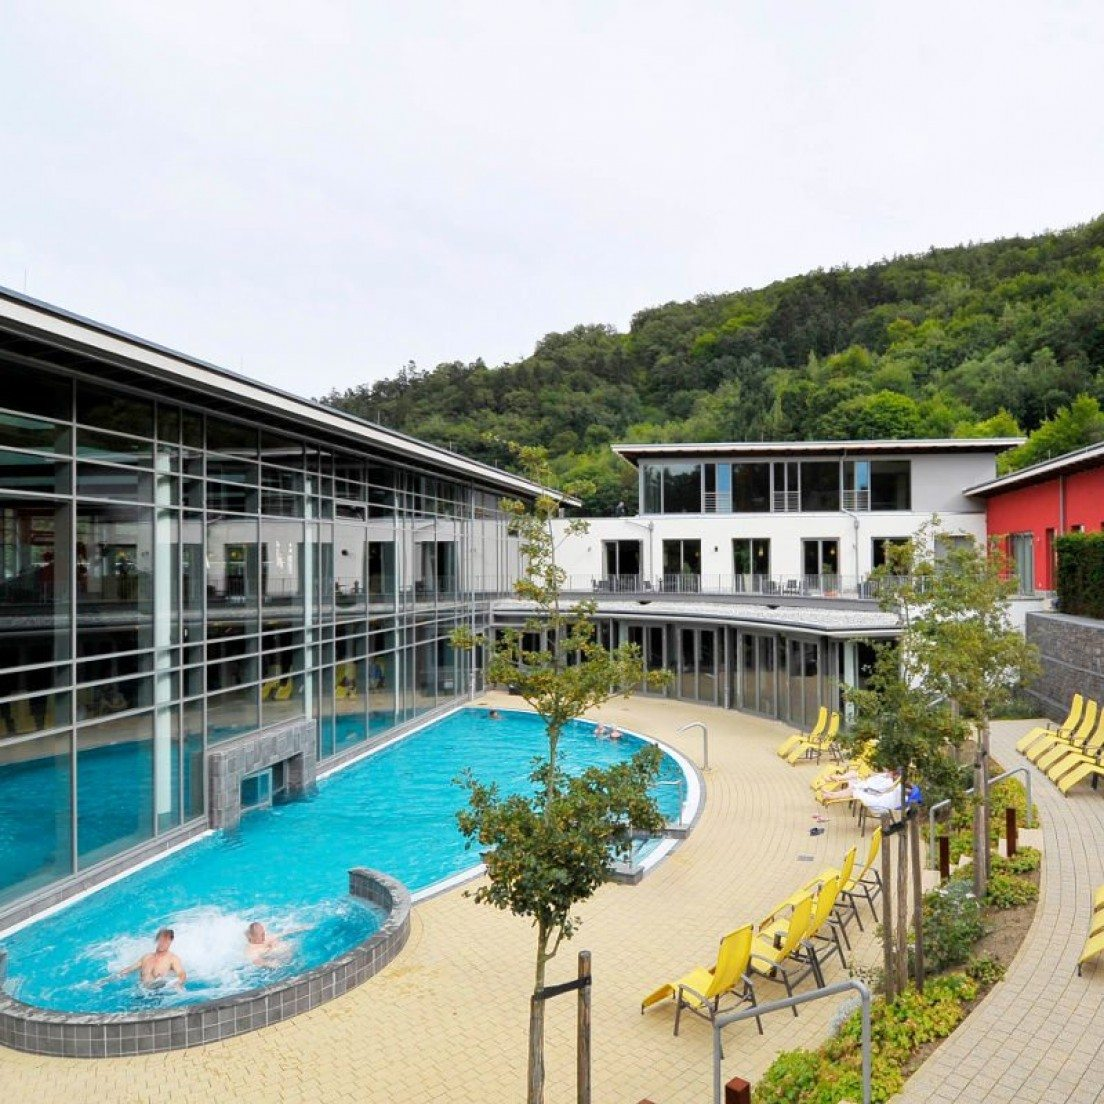 Deko Bad Bertrich Wellnesstag In Der Therme Bad Bertrich Geschenkidee De